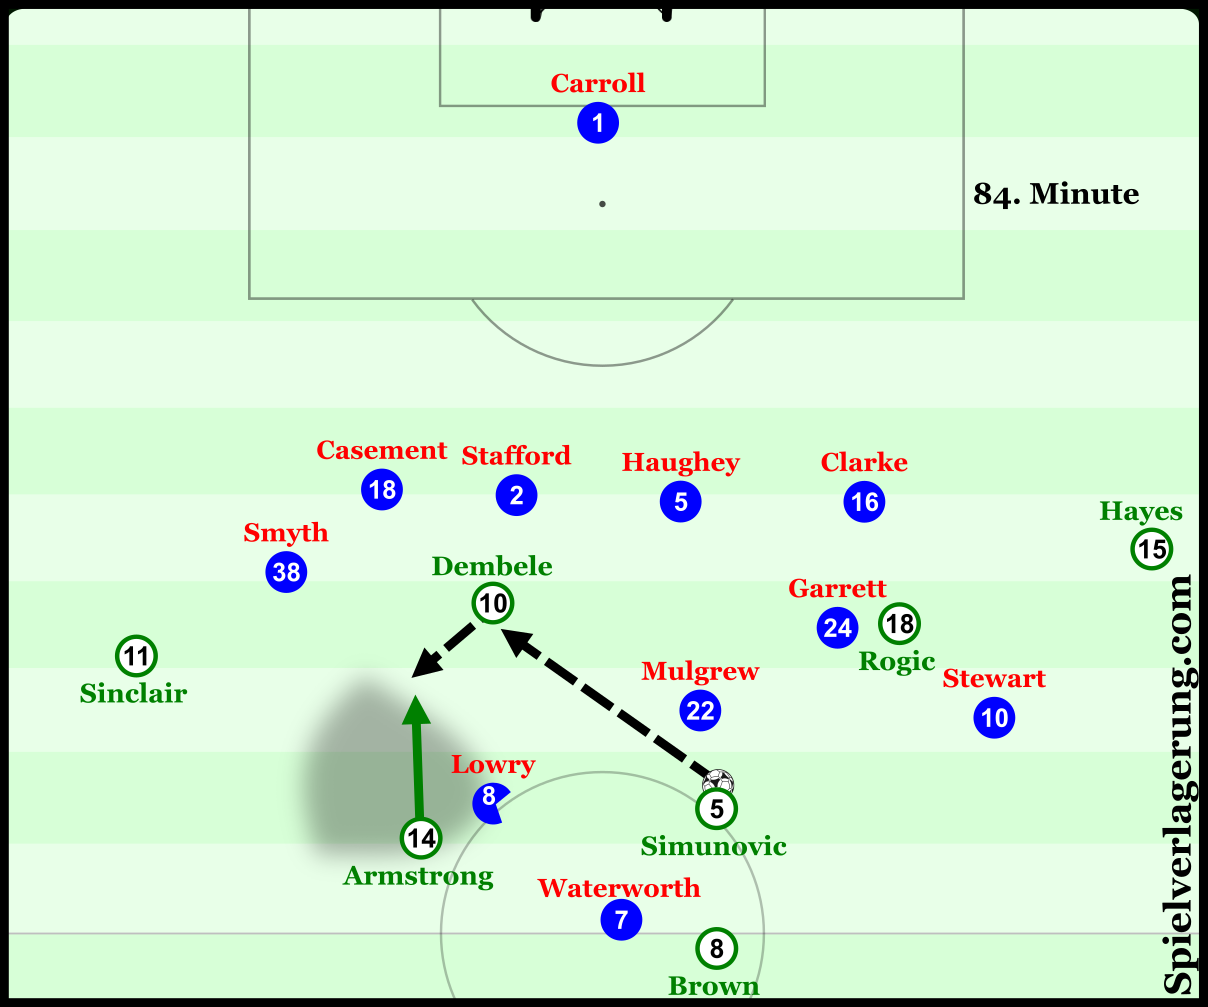 Had Armstrong anticipated the play faster here he could have received the ball in a dangerous area with Sinclair and Dembele running in behind. The diagonal pass up and layoff allow for the blindside of nearby players to be taken advantage of. Even though Armstrong can't read the play quickly enough to capitalise on the situation, Lowry doesn't see him until he already has the ball.